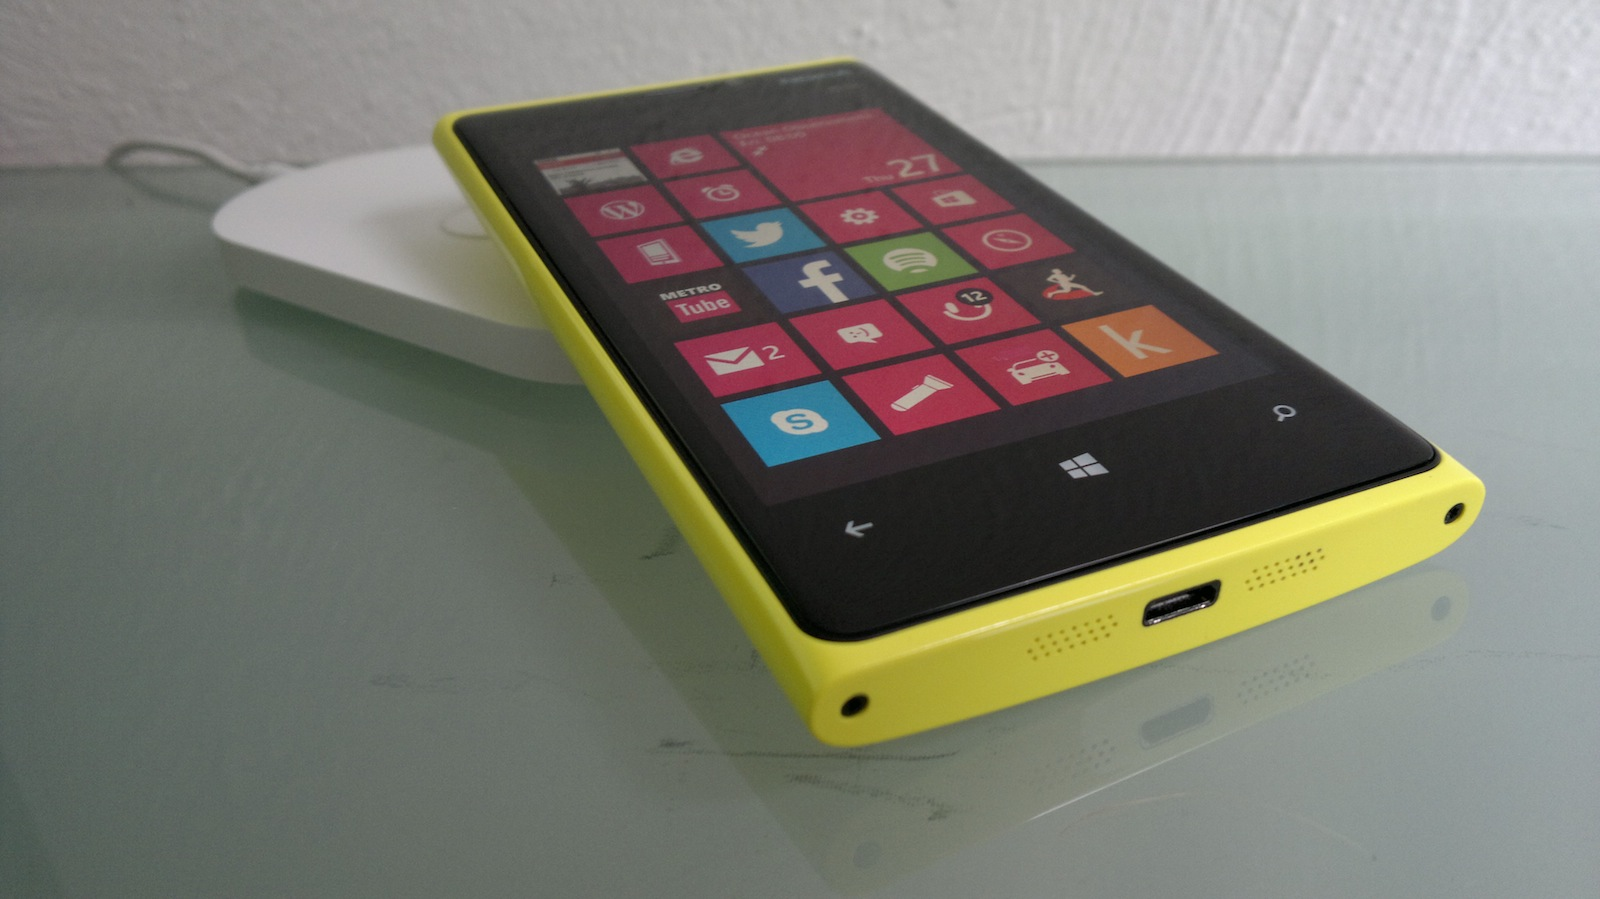 Nokia Lumia 920 on wireless charging plate